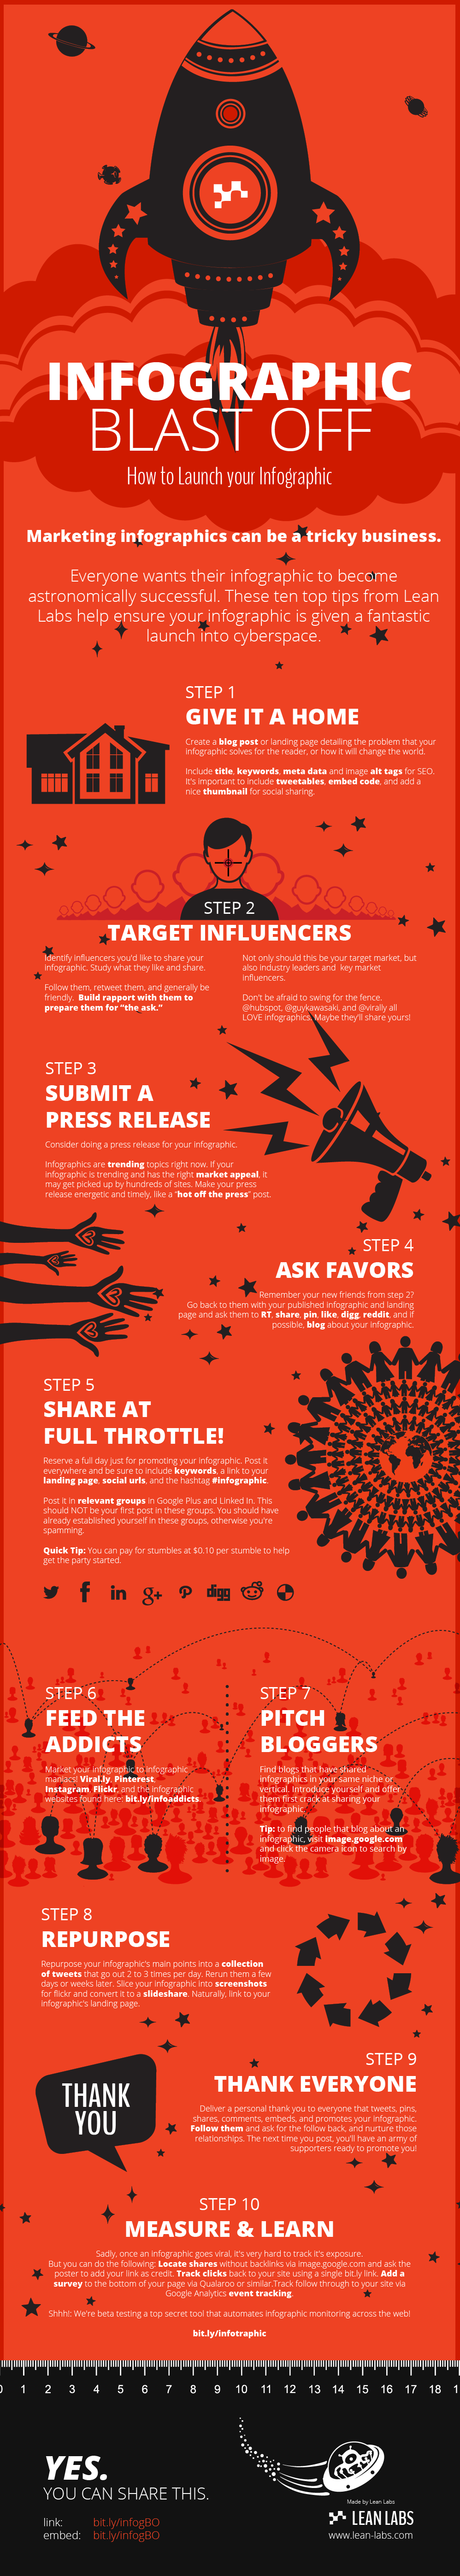 Infographic: Infographic Blast Off How To Launch Your Infographic